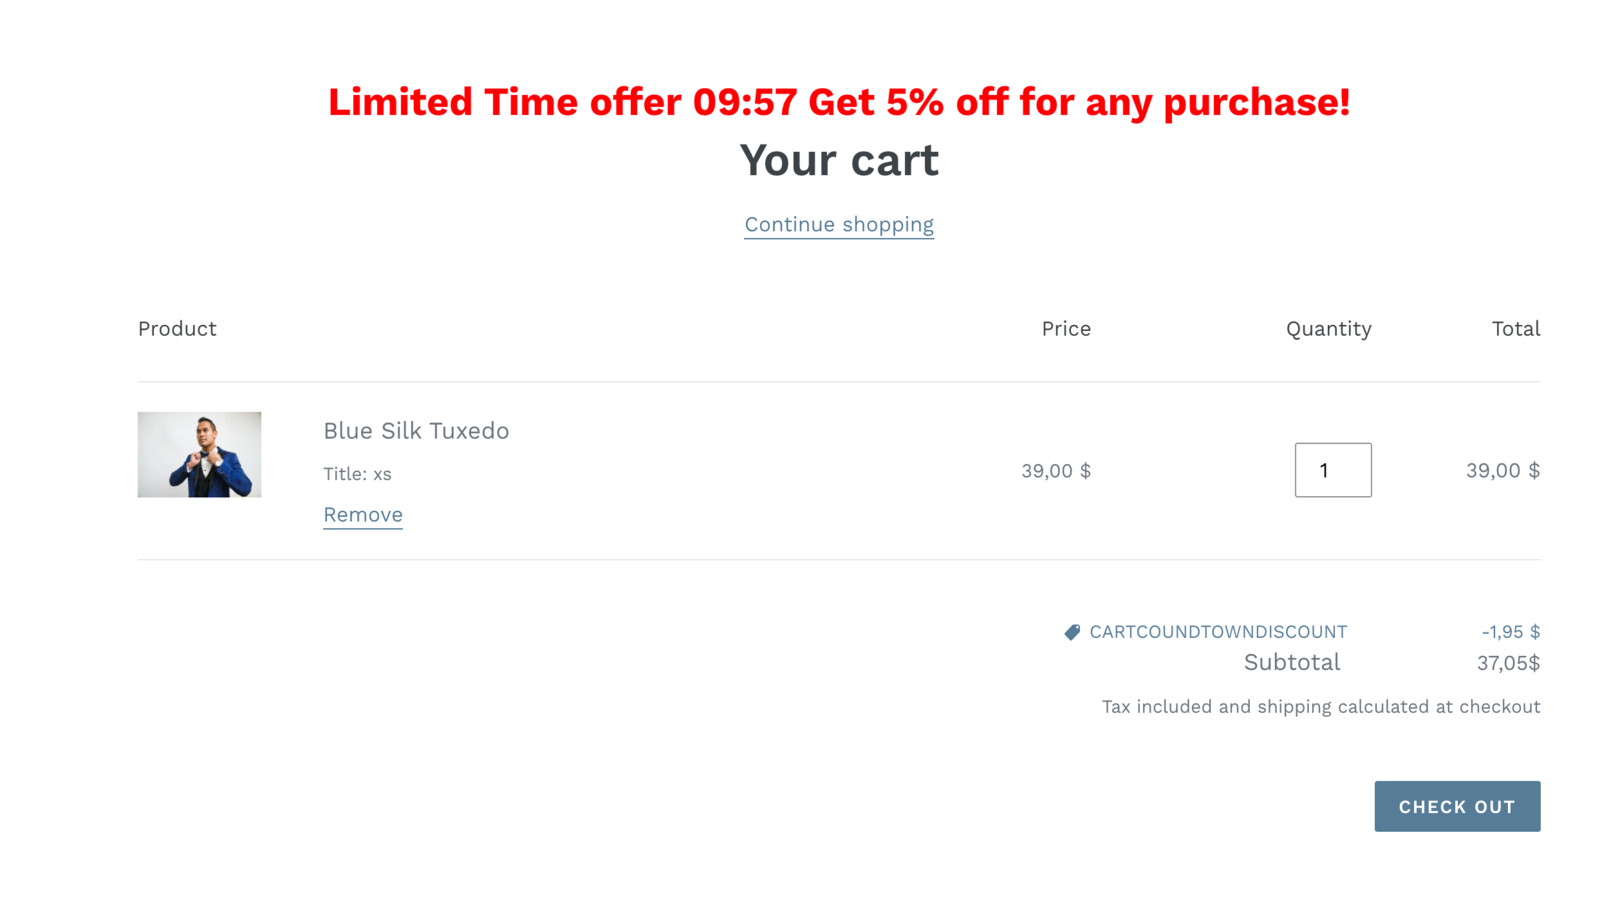 Apply small discounts directly on the cart page